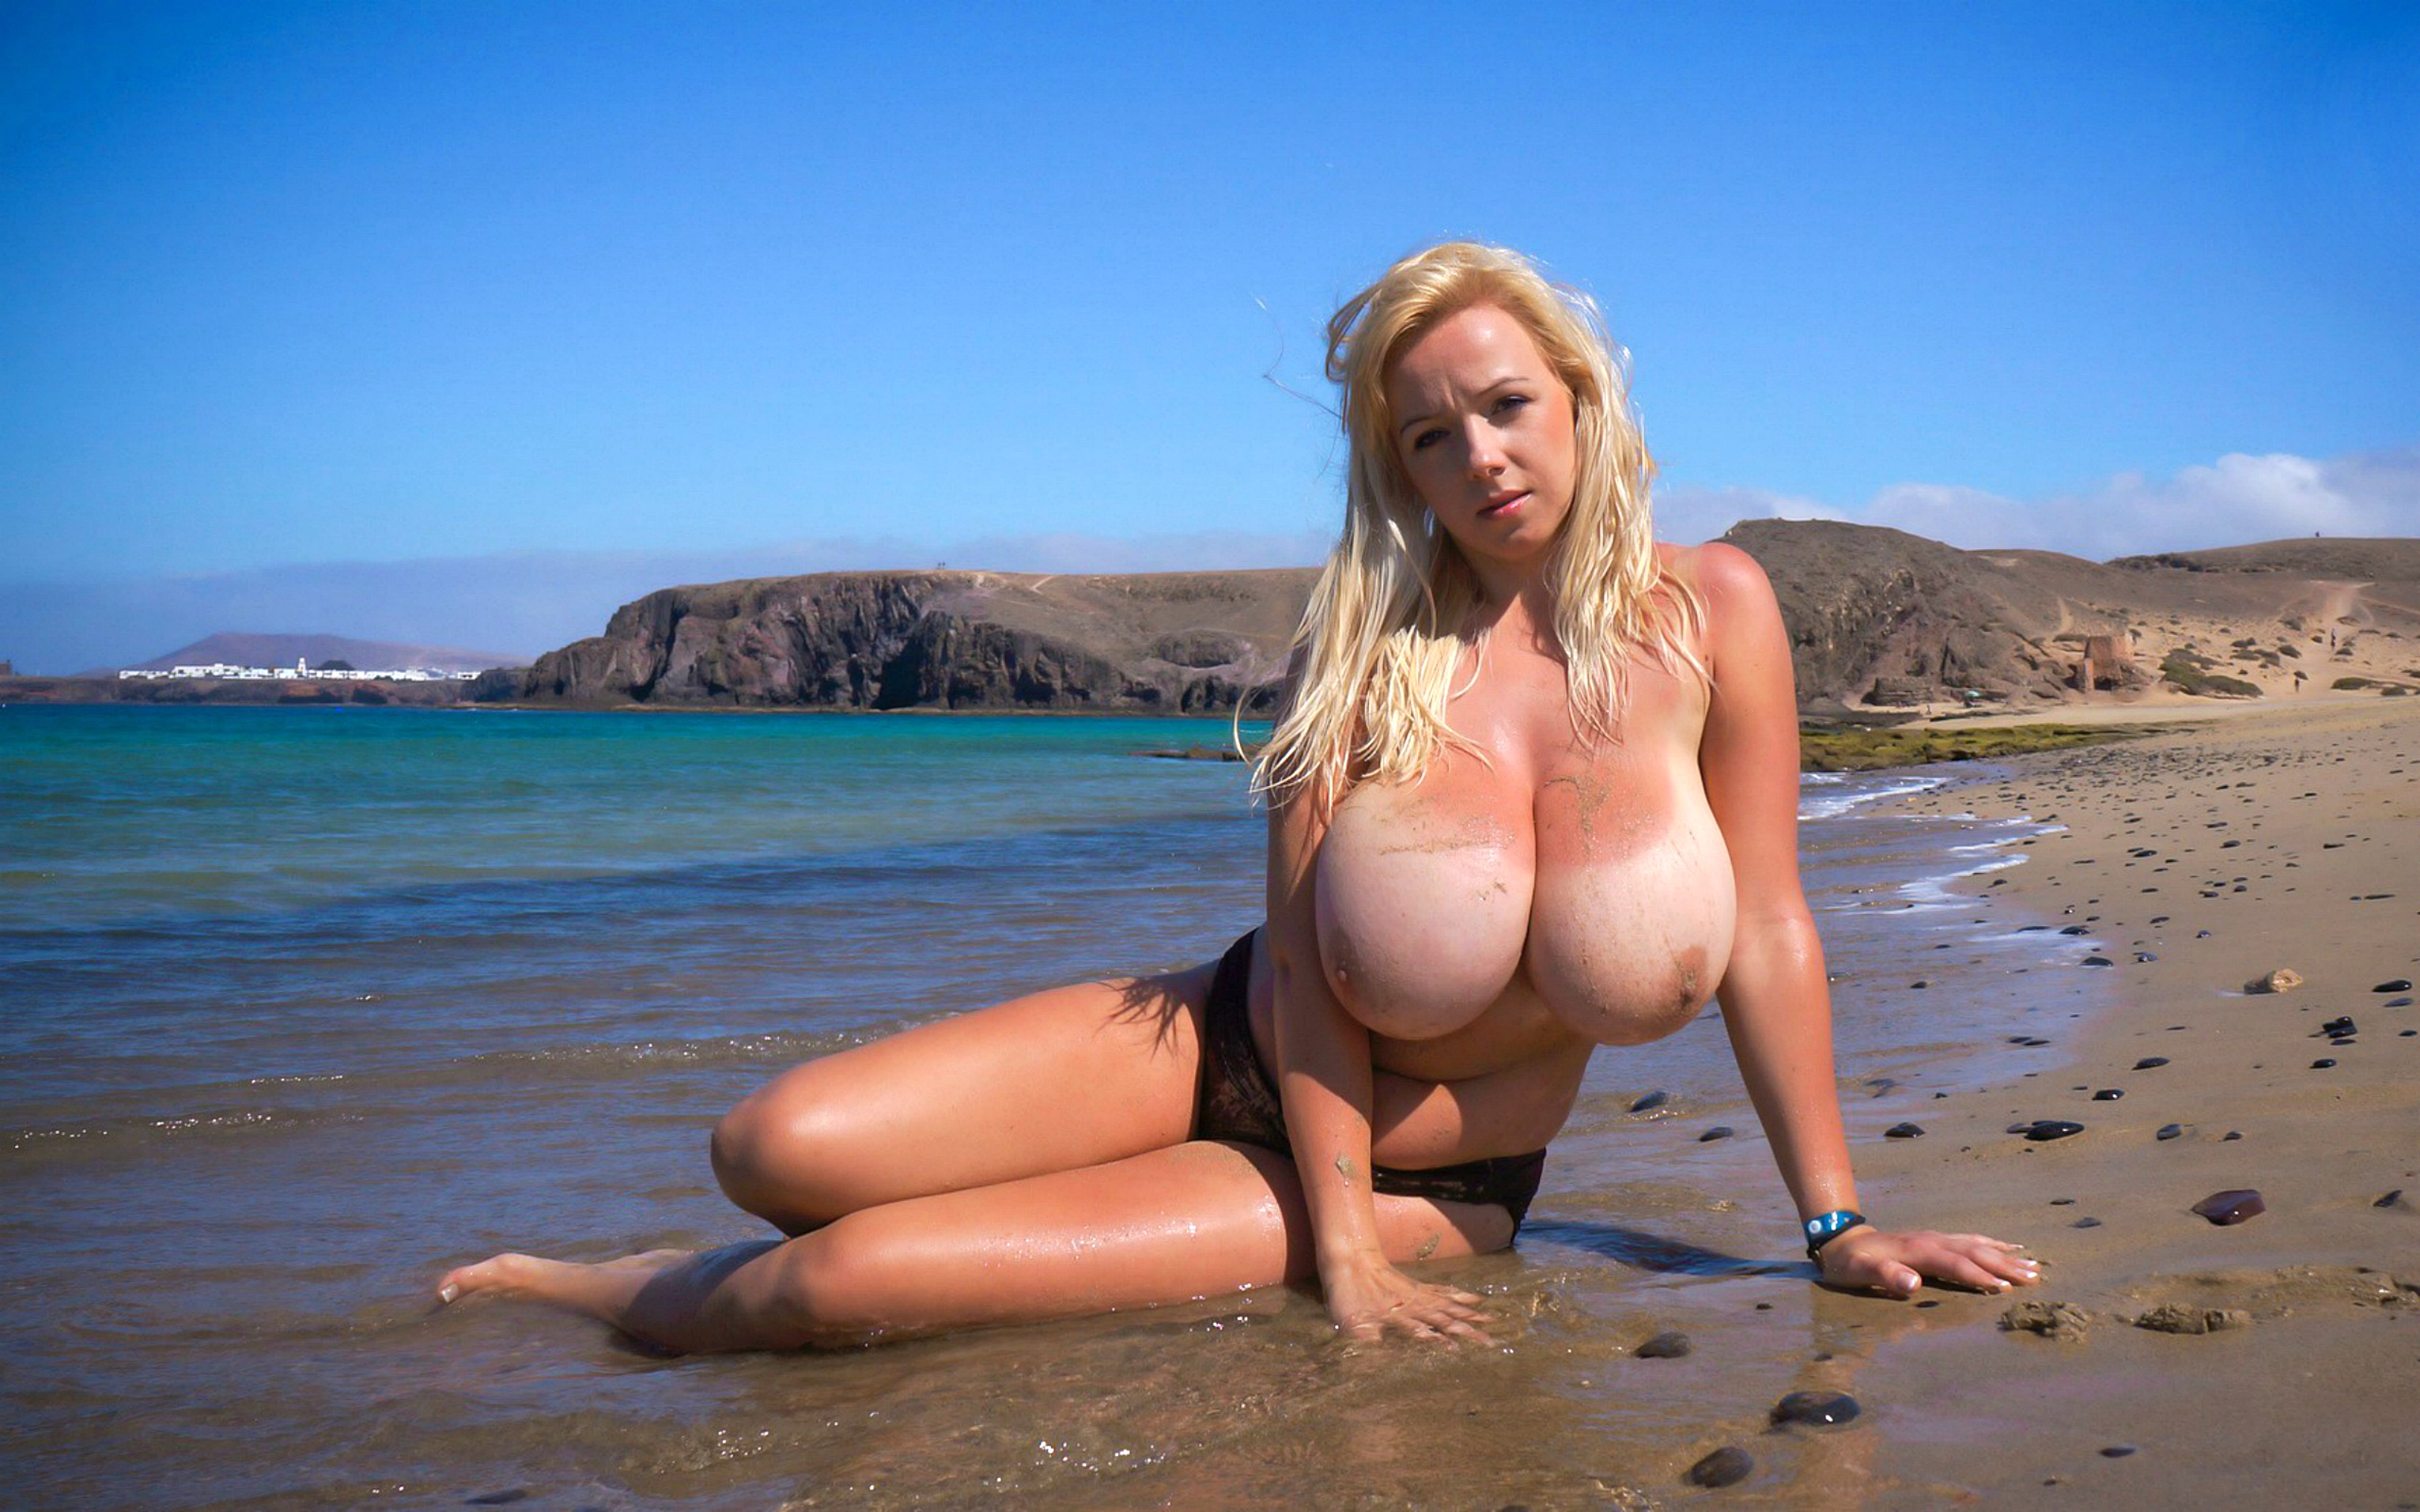 Wallpaper Model, Blonde, Beach, Topless, Huge Tits, Duana -2101